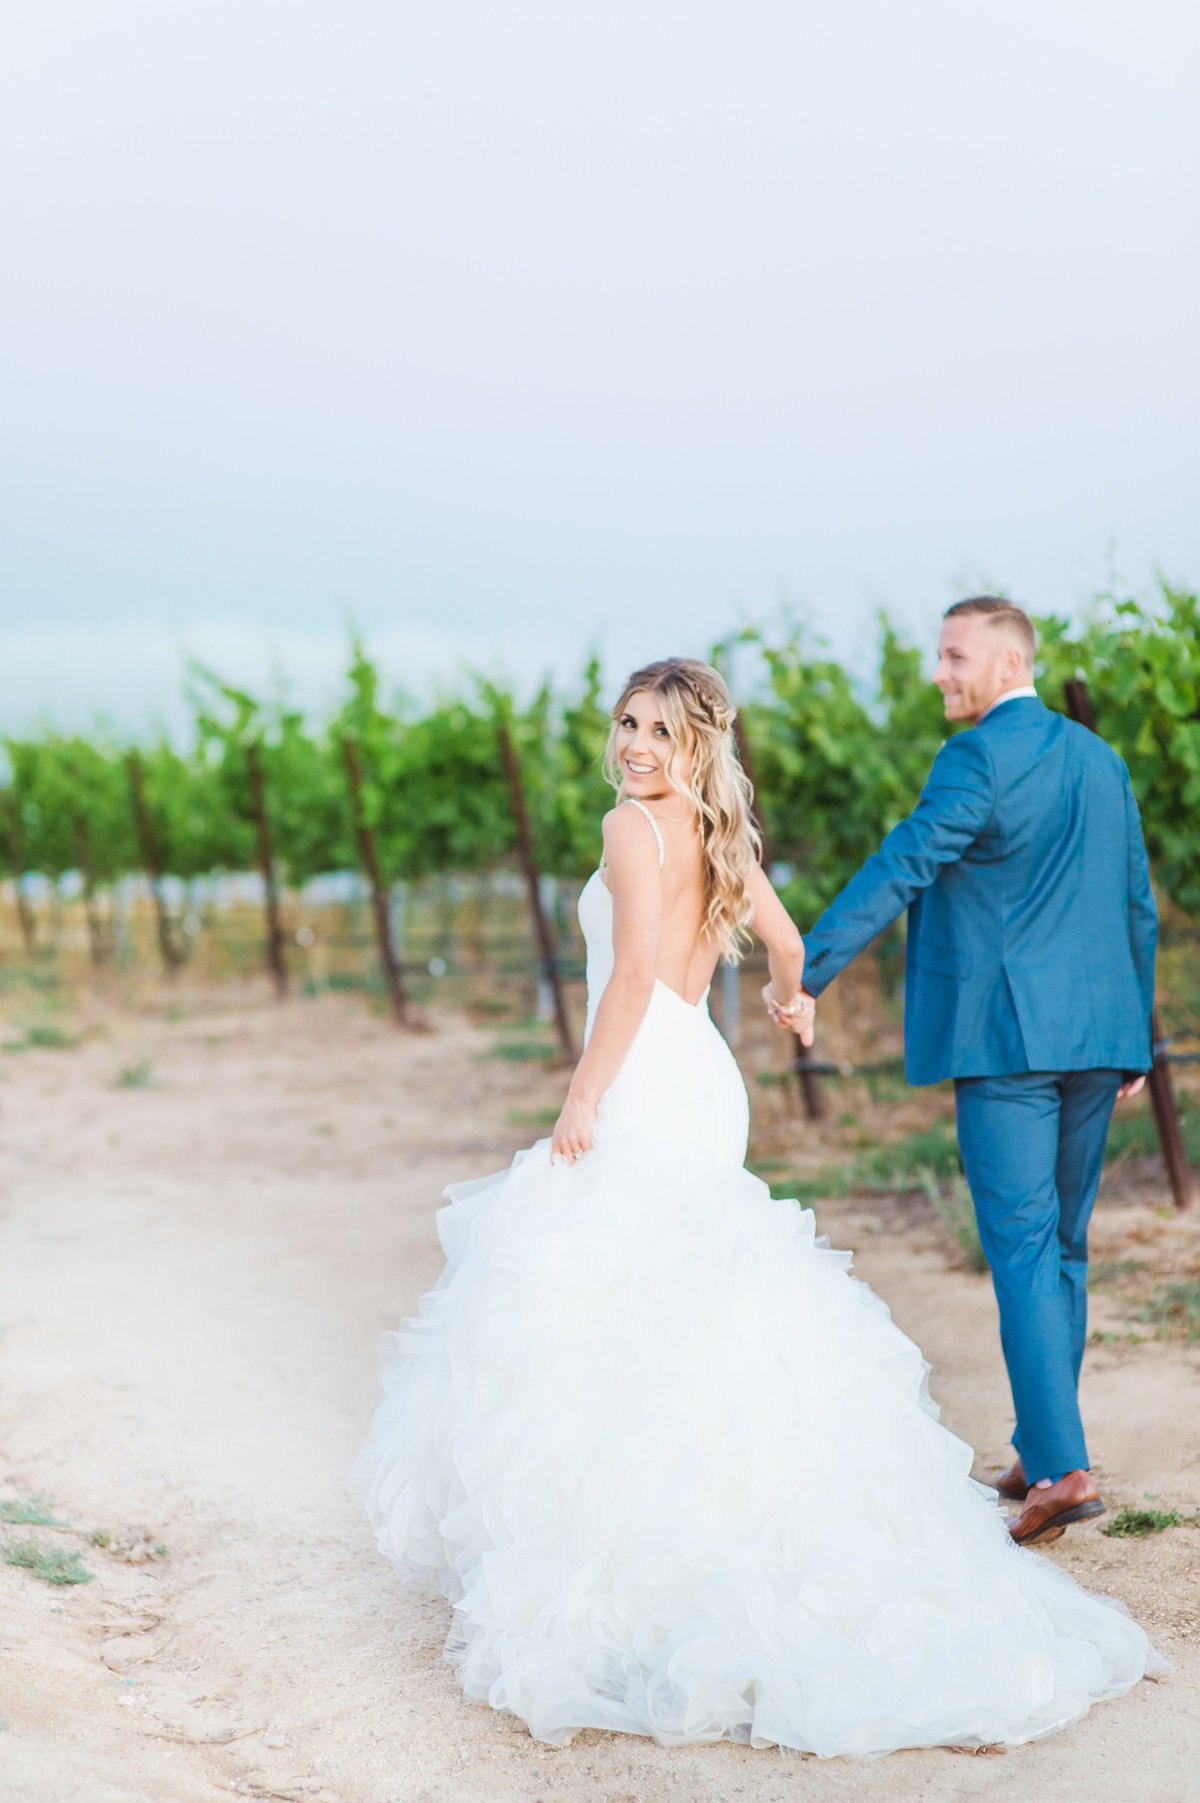 Mount-Palomar-Winery-Temecula-Wedding-Photography-131